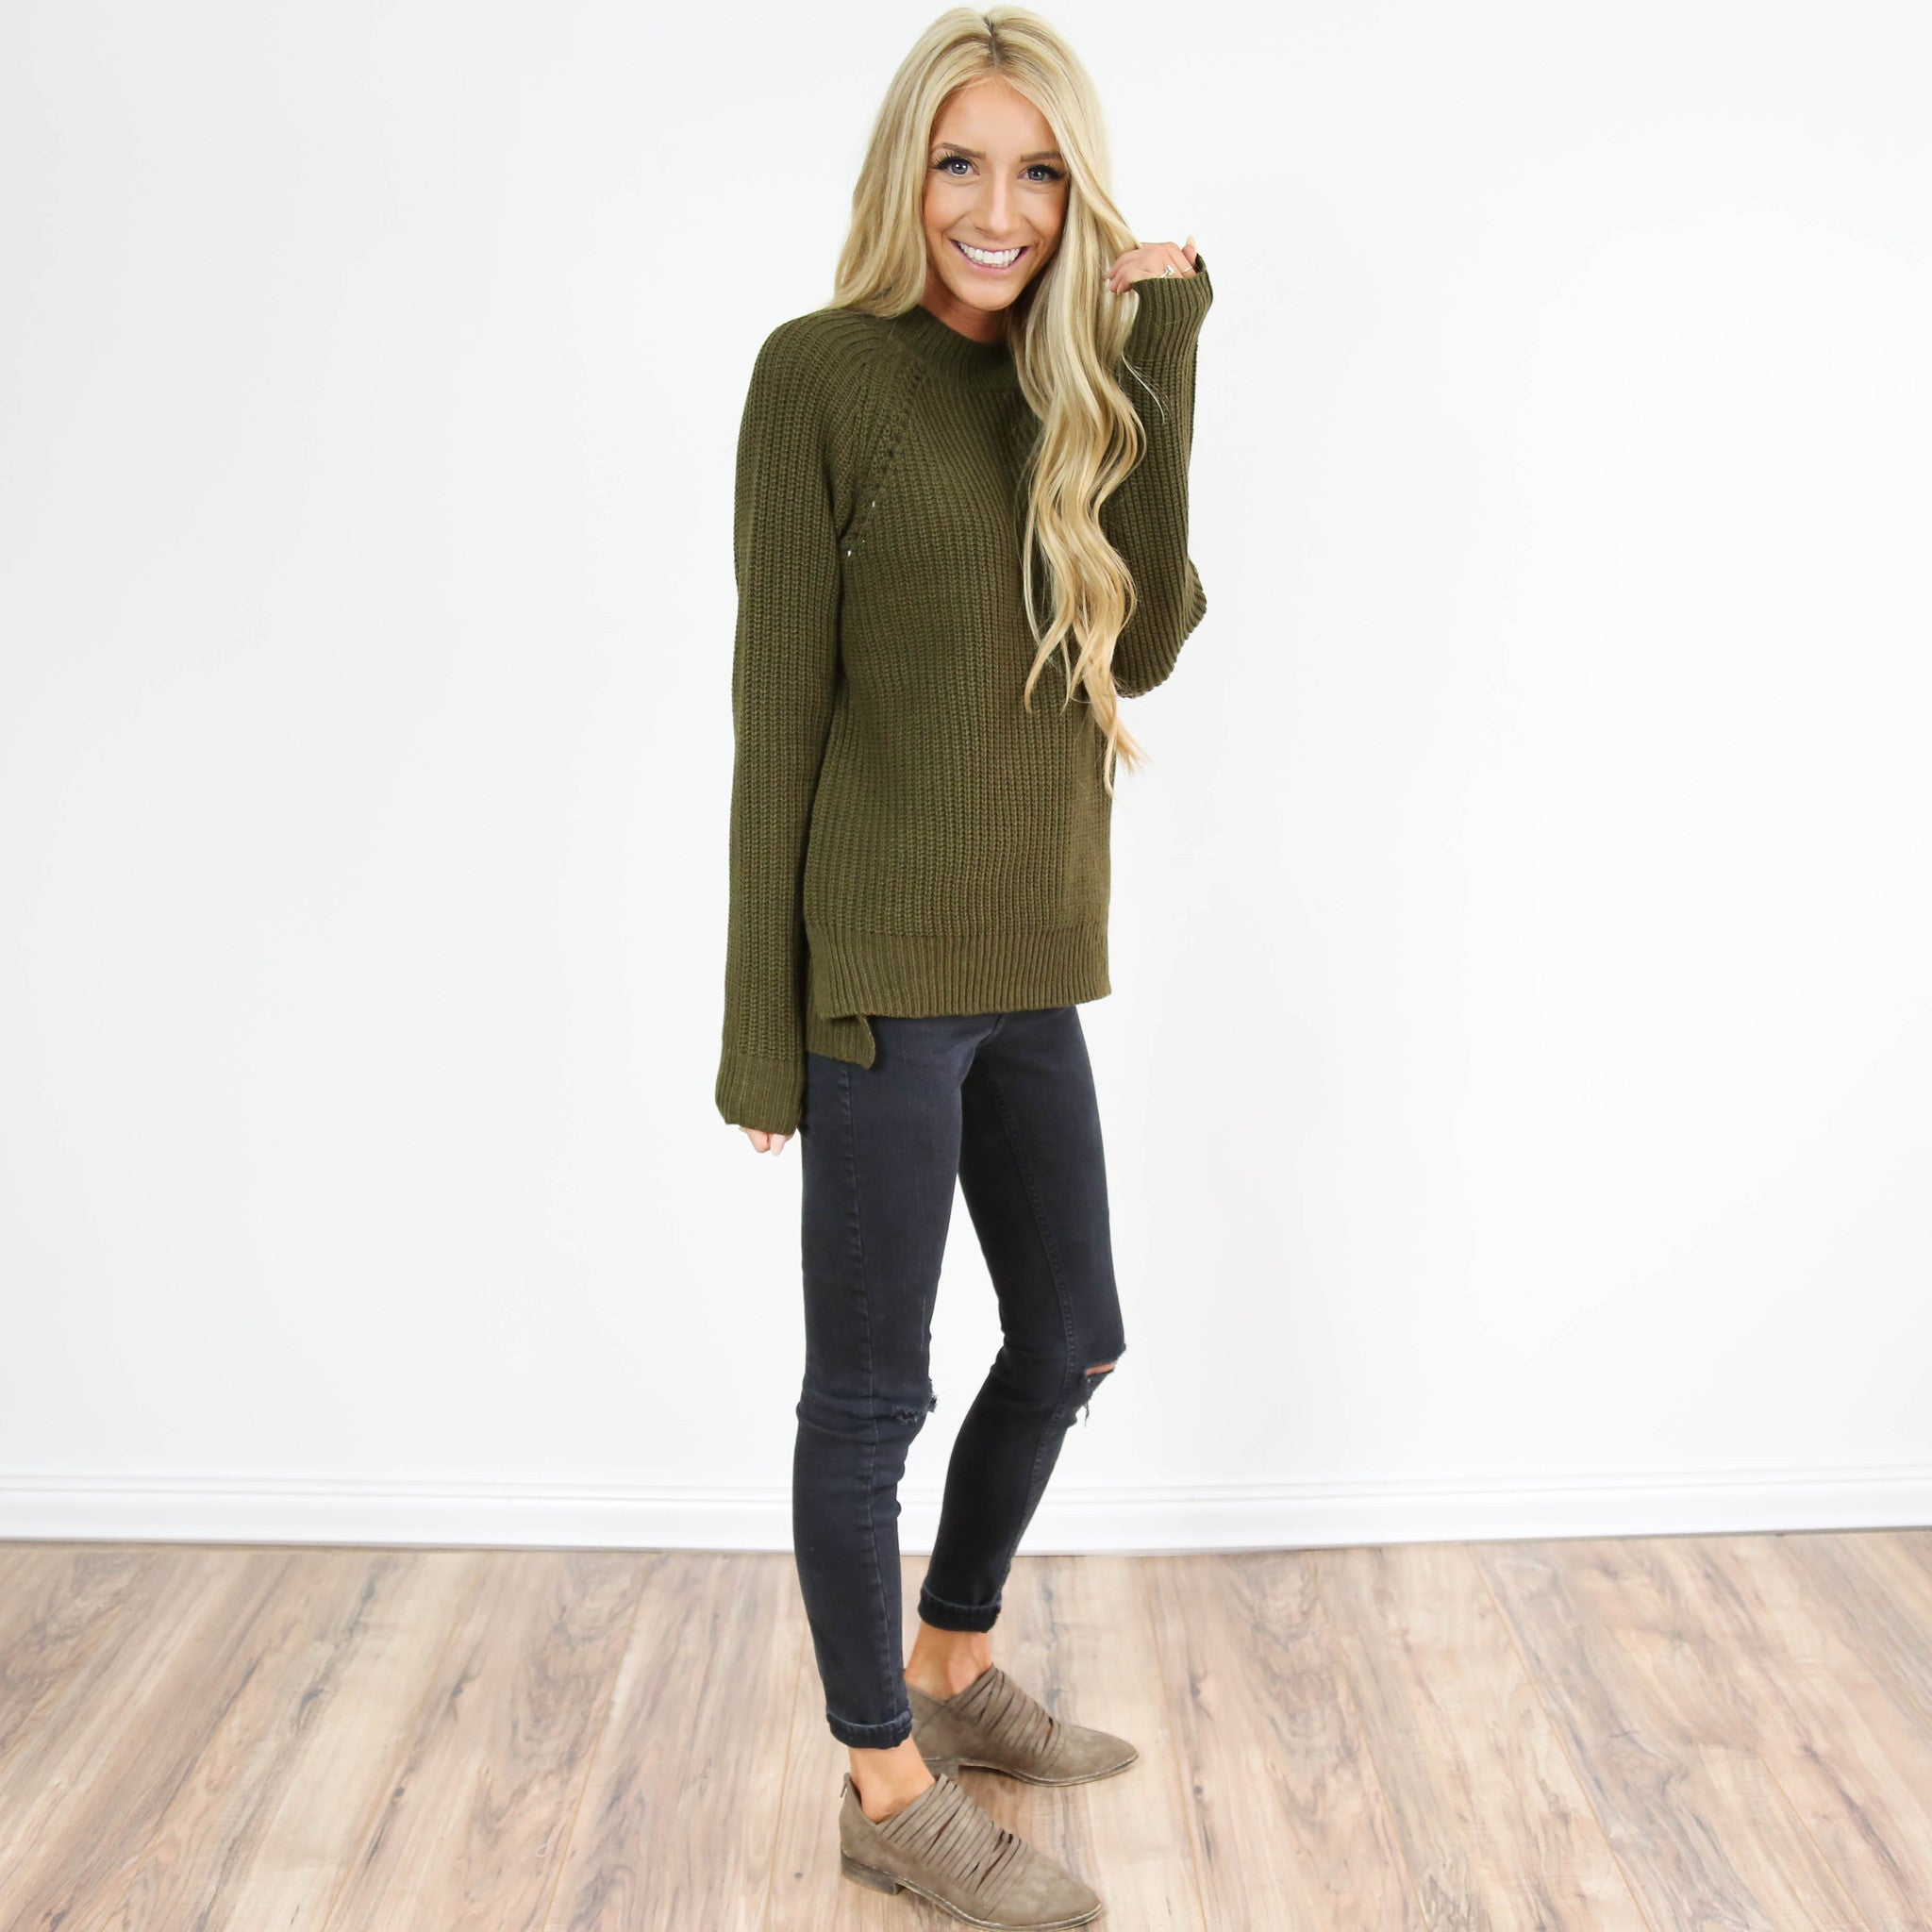 Carolina Turtle Neck Sweater